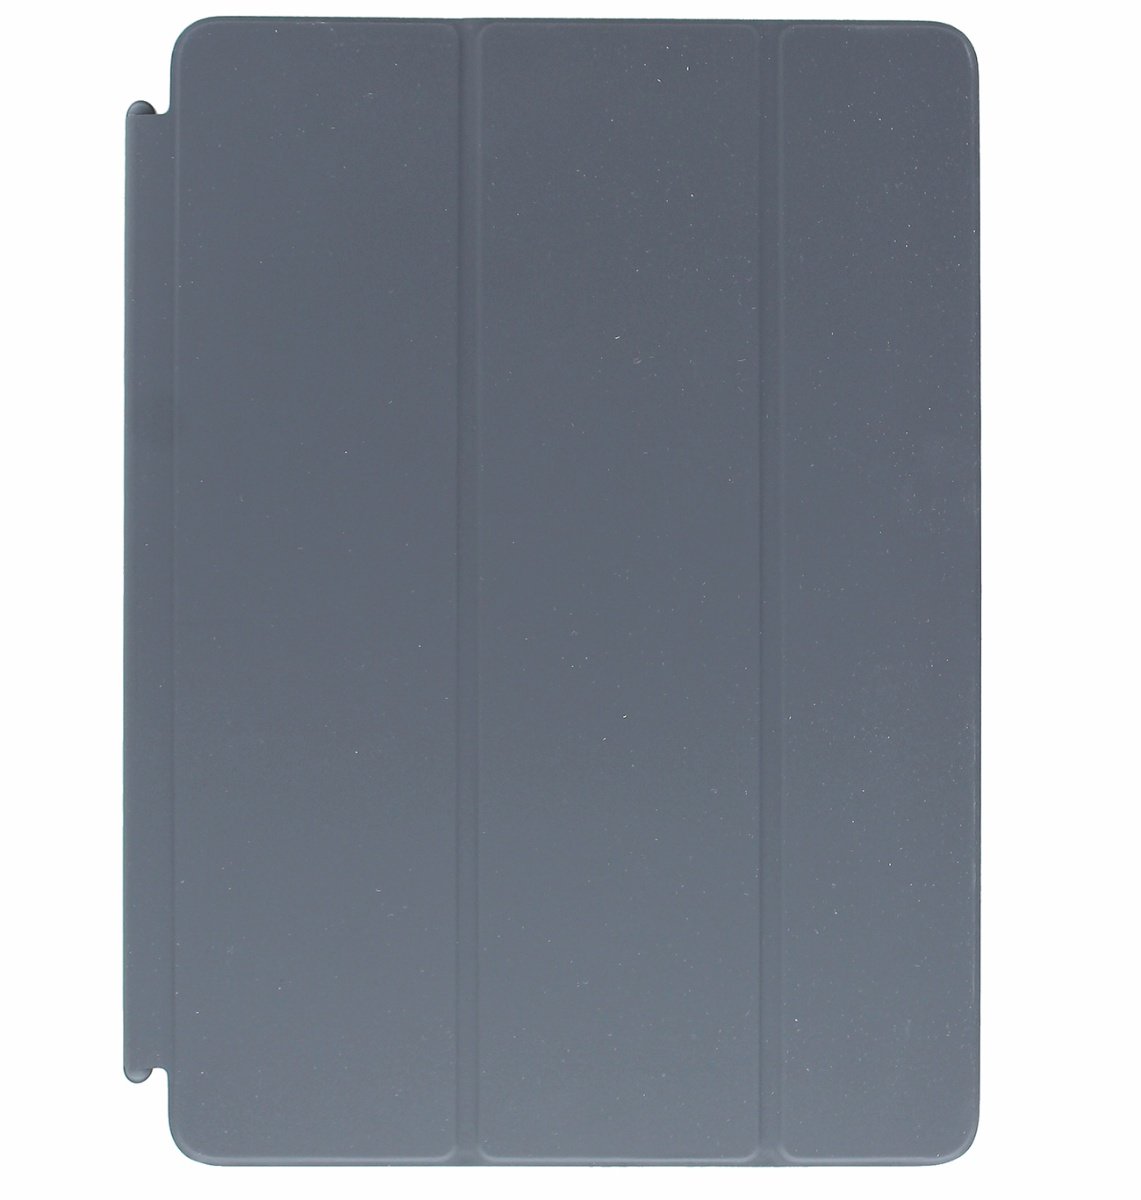 Apple Brand Smart Cover for Apple iPad 9.7 inch Tablets - Charcoal Gray